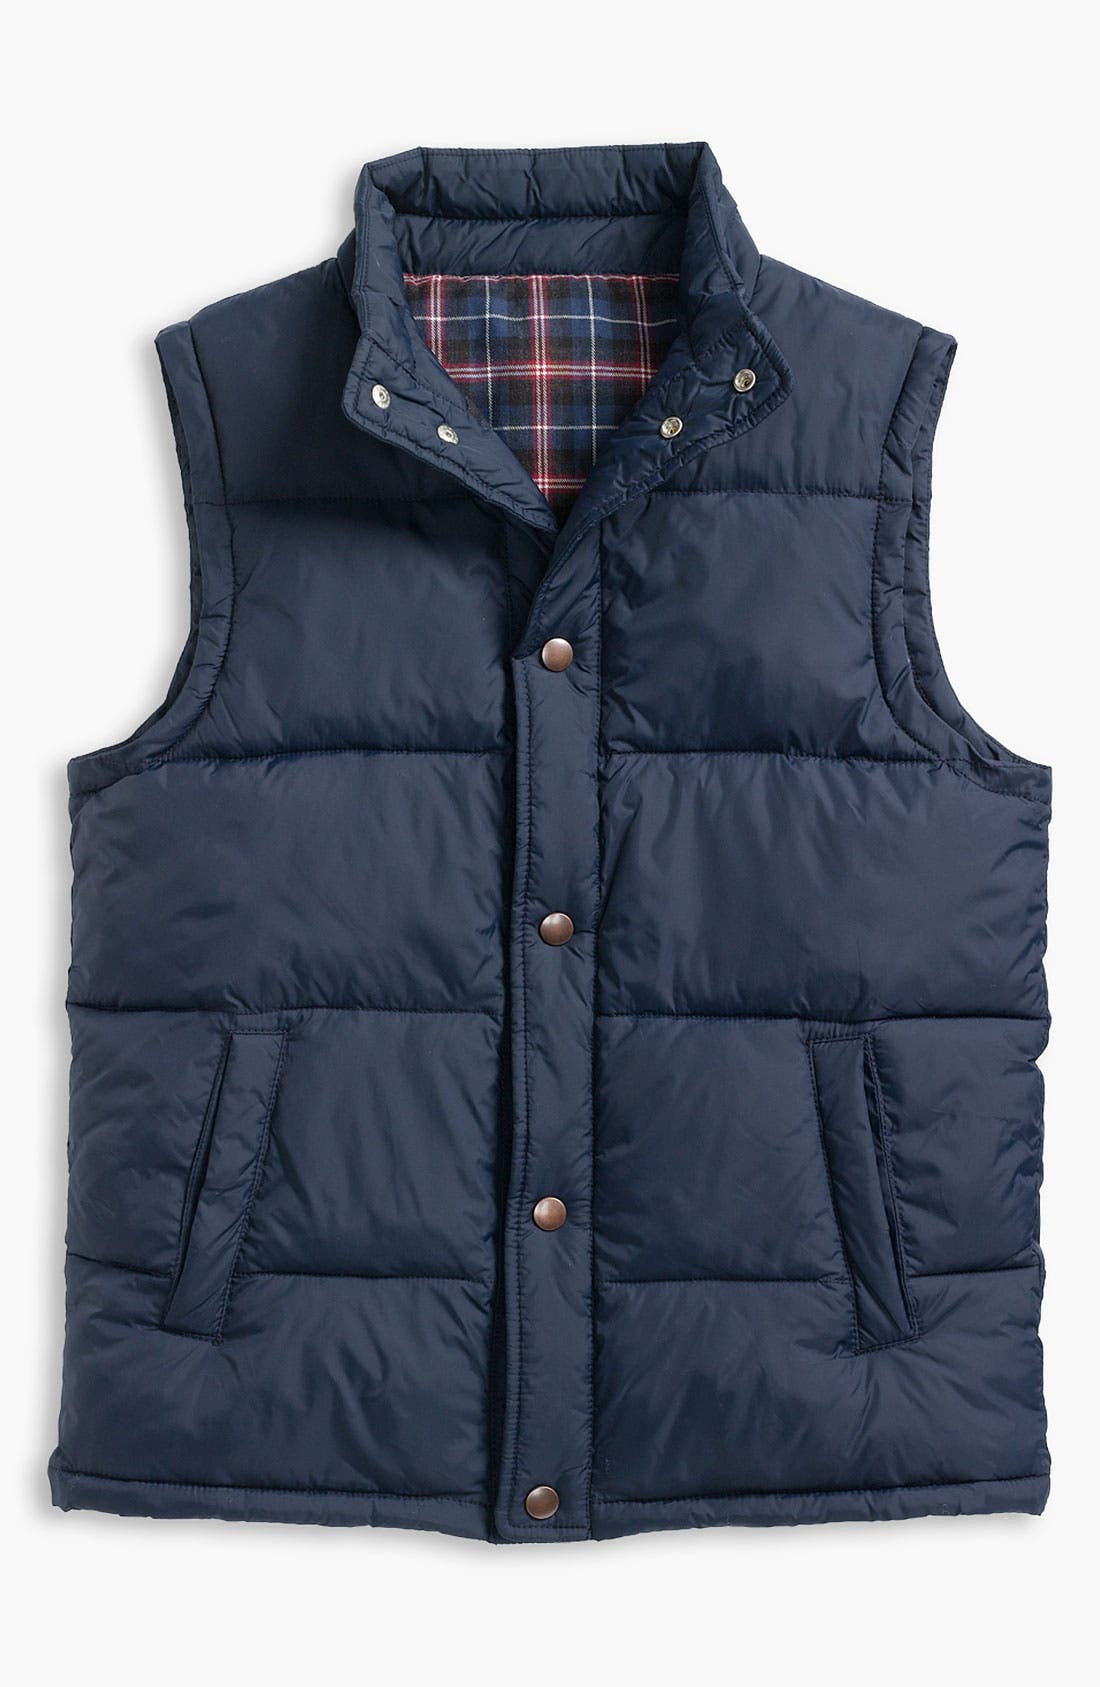 Main Image - Tucker + Tate Flannel Lined Field Vest (Big Boys)